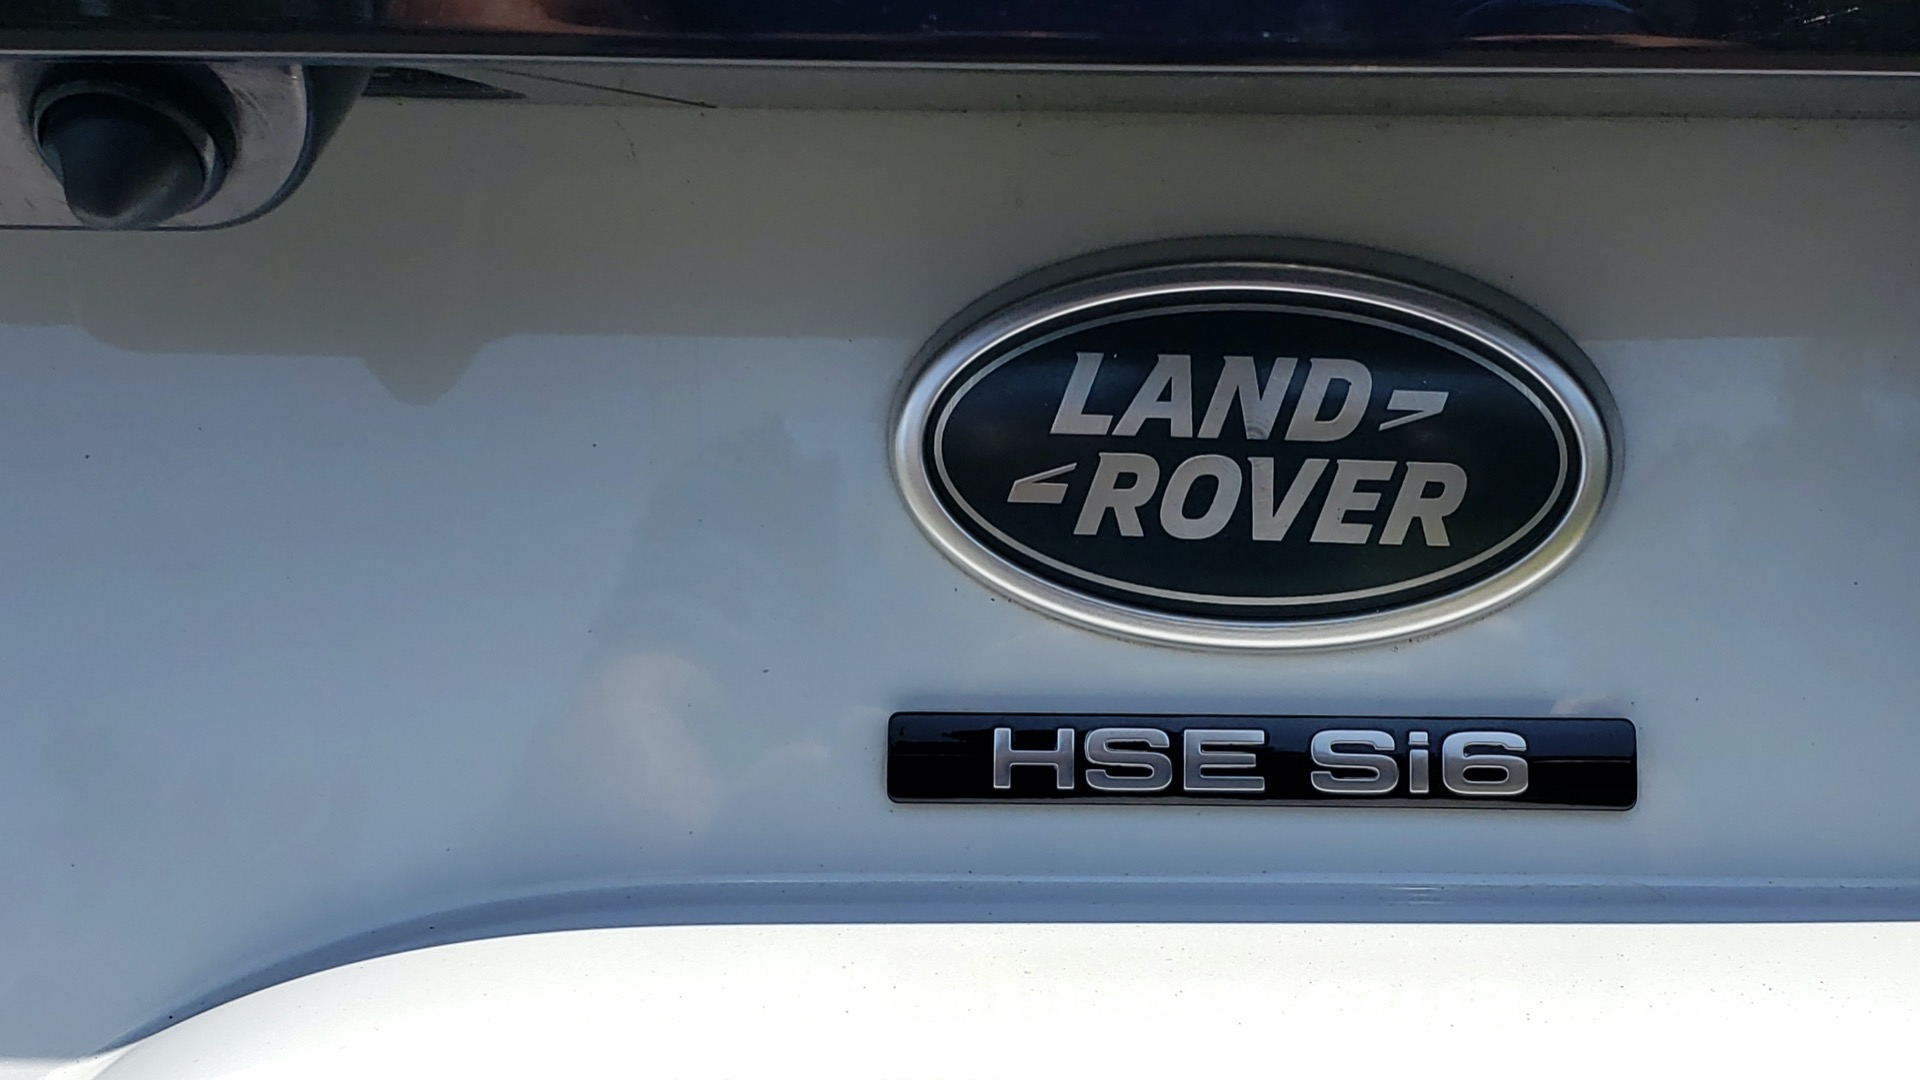 Used 2017 Land Rover DISCOVERY HSE LUXURY / SC V6 / NAV / DRIVE PRO / VISION ASSIST for sale Sold at Formula Imports in Charlotte NC 28227 38